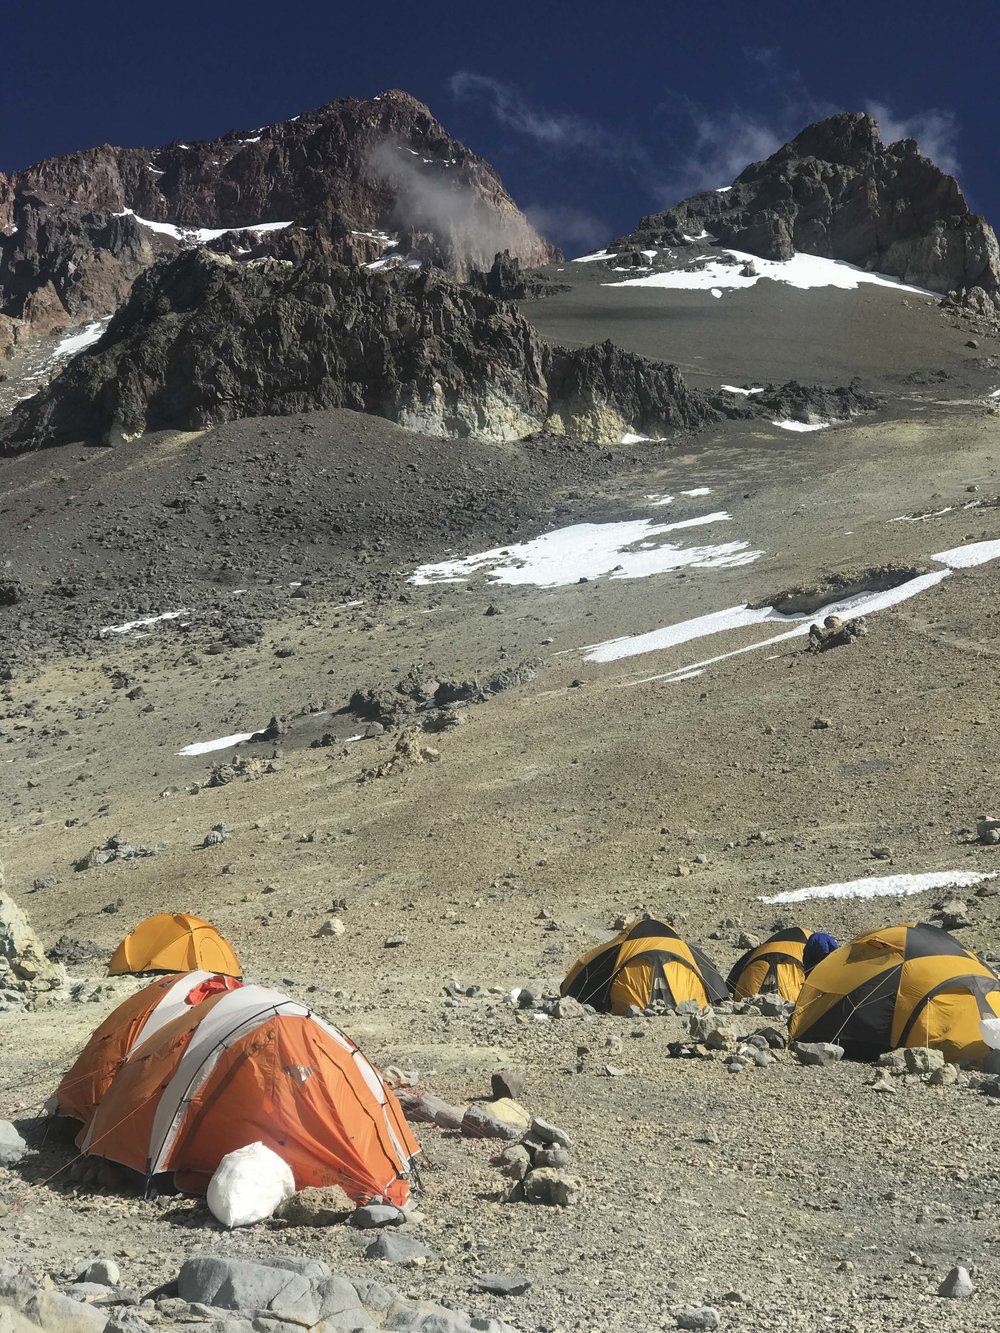 Another shot of Camp III, summit in the background